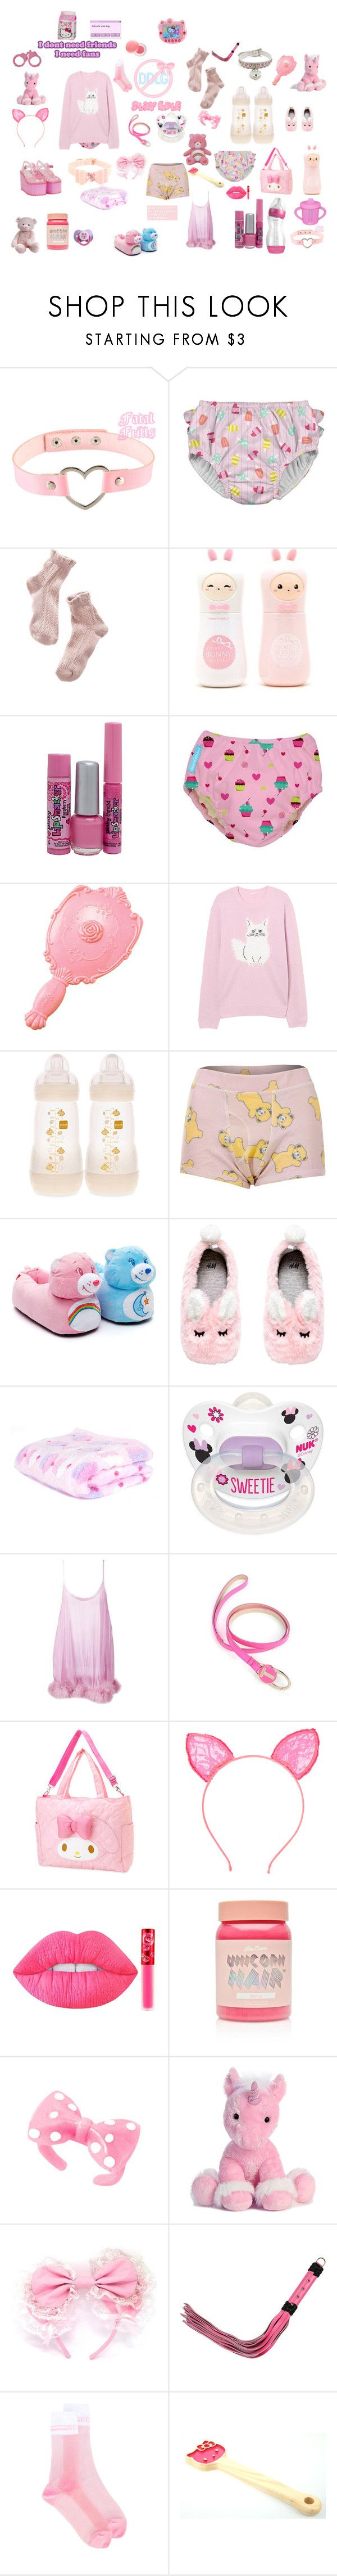 """""""daddies princess"""" by unicorn-923 ❤ liked on Polyvore featuring 1937, TONYMOLY, Bonne Bell, Disney, Wildfox, Gilda & Pearl, Venom, Ted Baker, Lime Crime and INC International Concepts"""